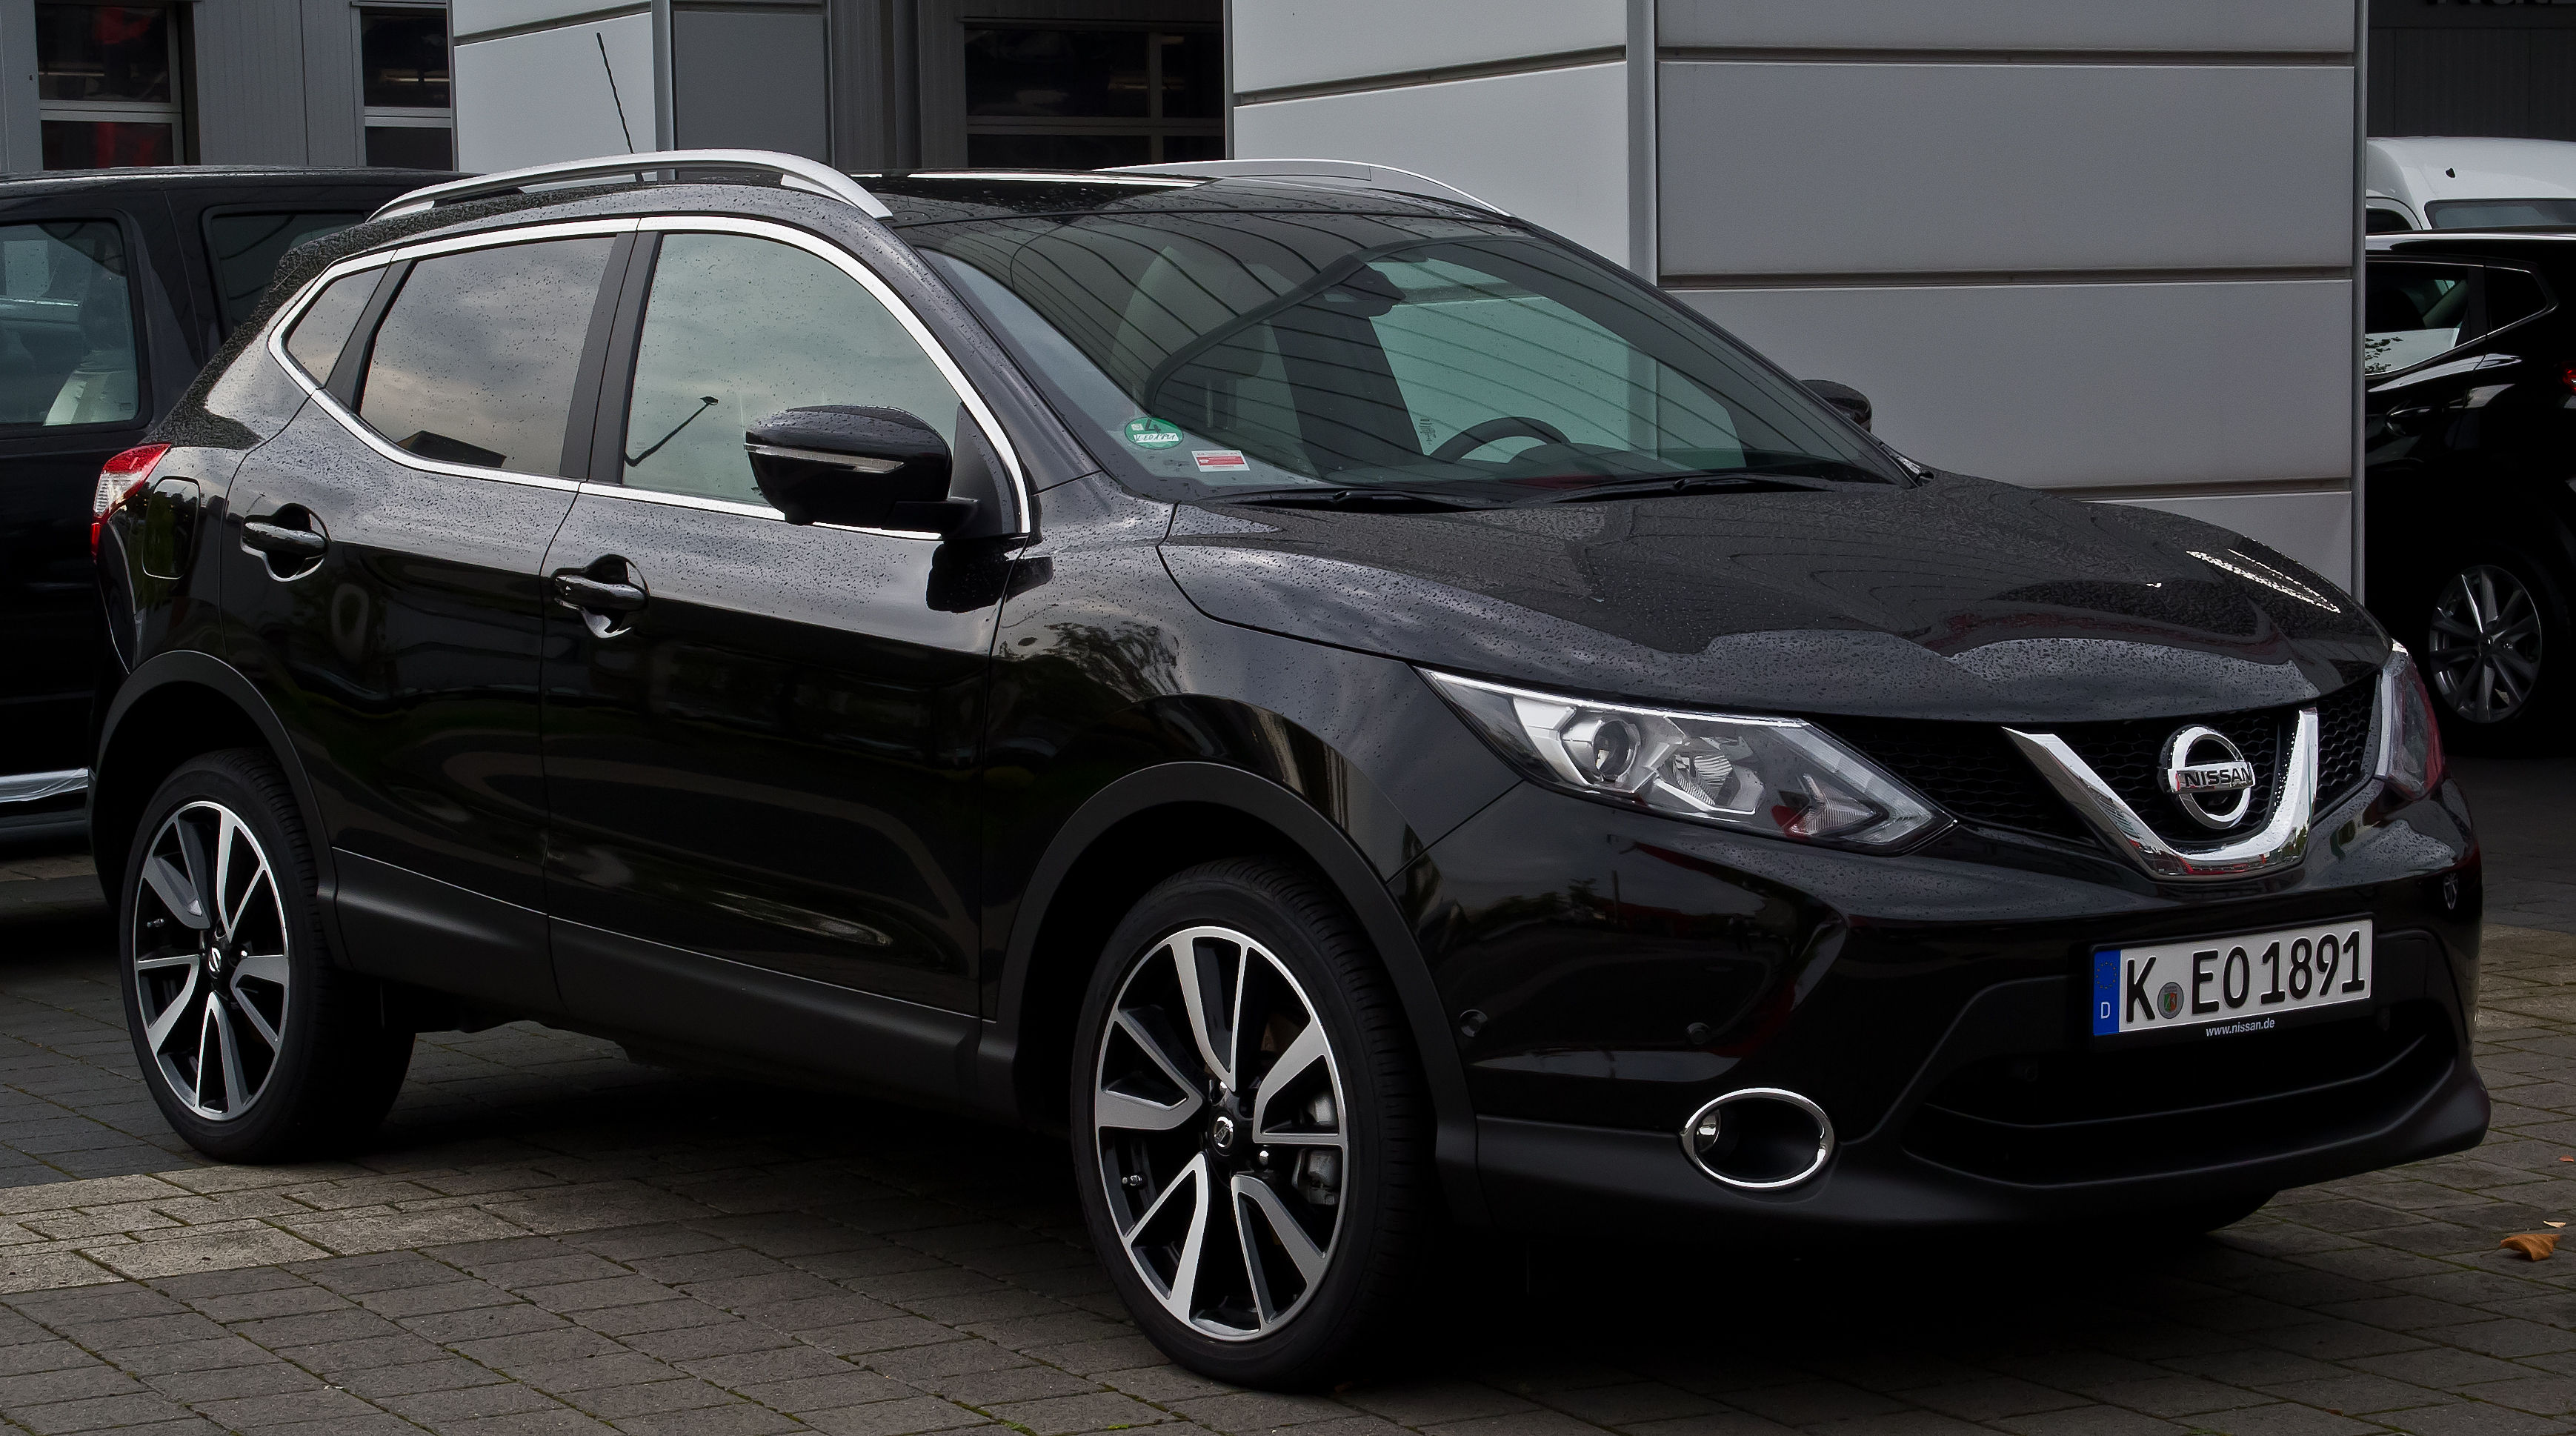 2016 nissan qashqai ii pictures information and specs. Black Bedroom Furniture Sets. Home Design Ideas